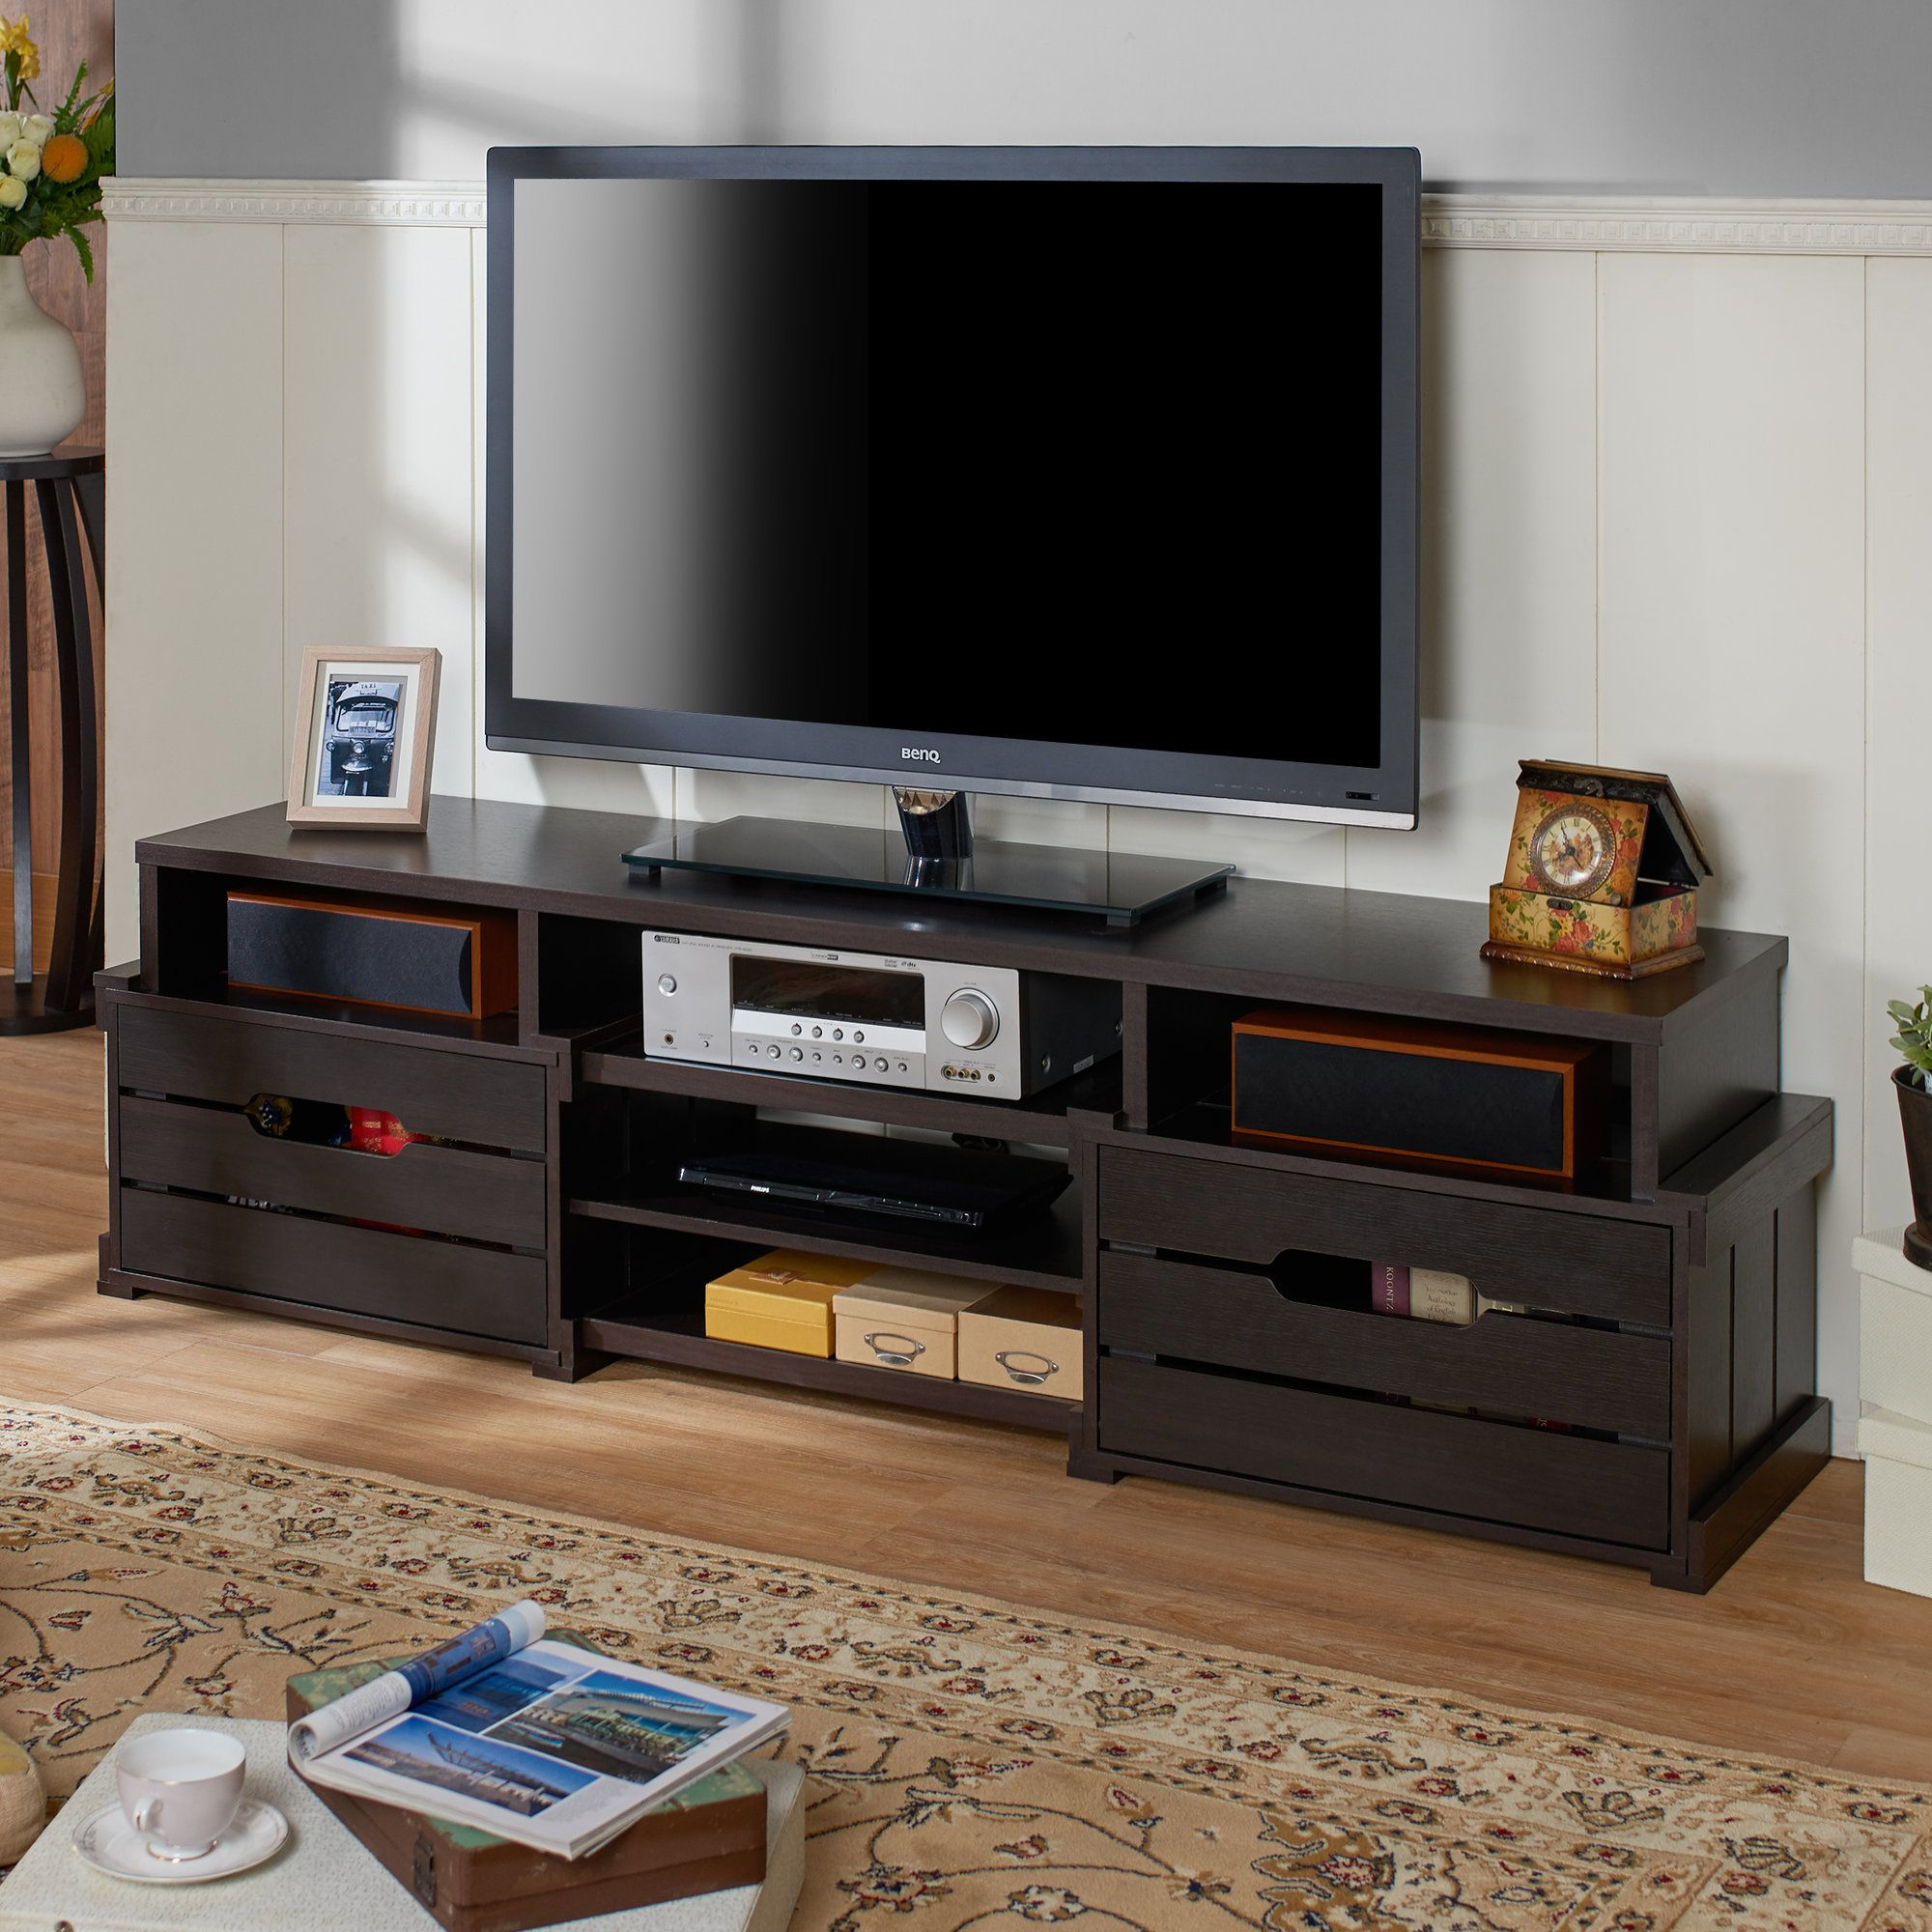 Camelopardalis Tv Stand Tv Stand Wood Flat Screen Tv Stand 65 Inch Tv Stand